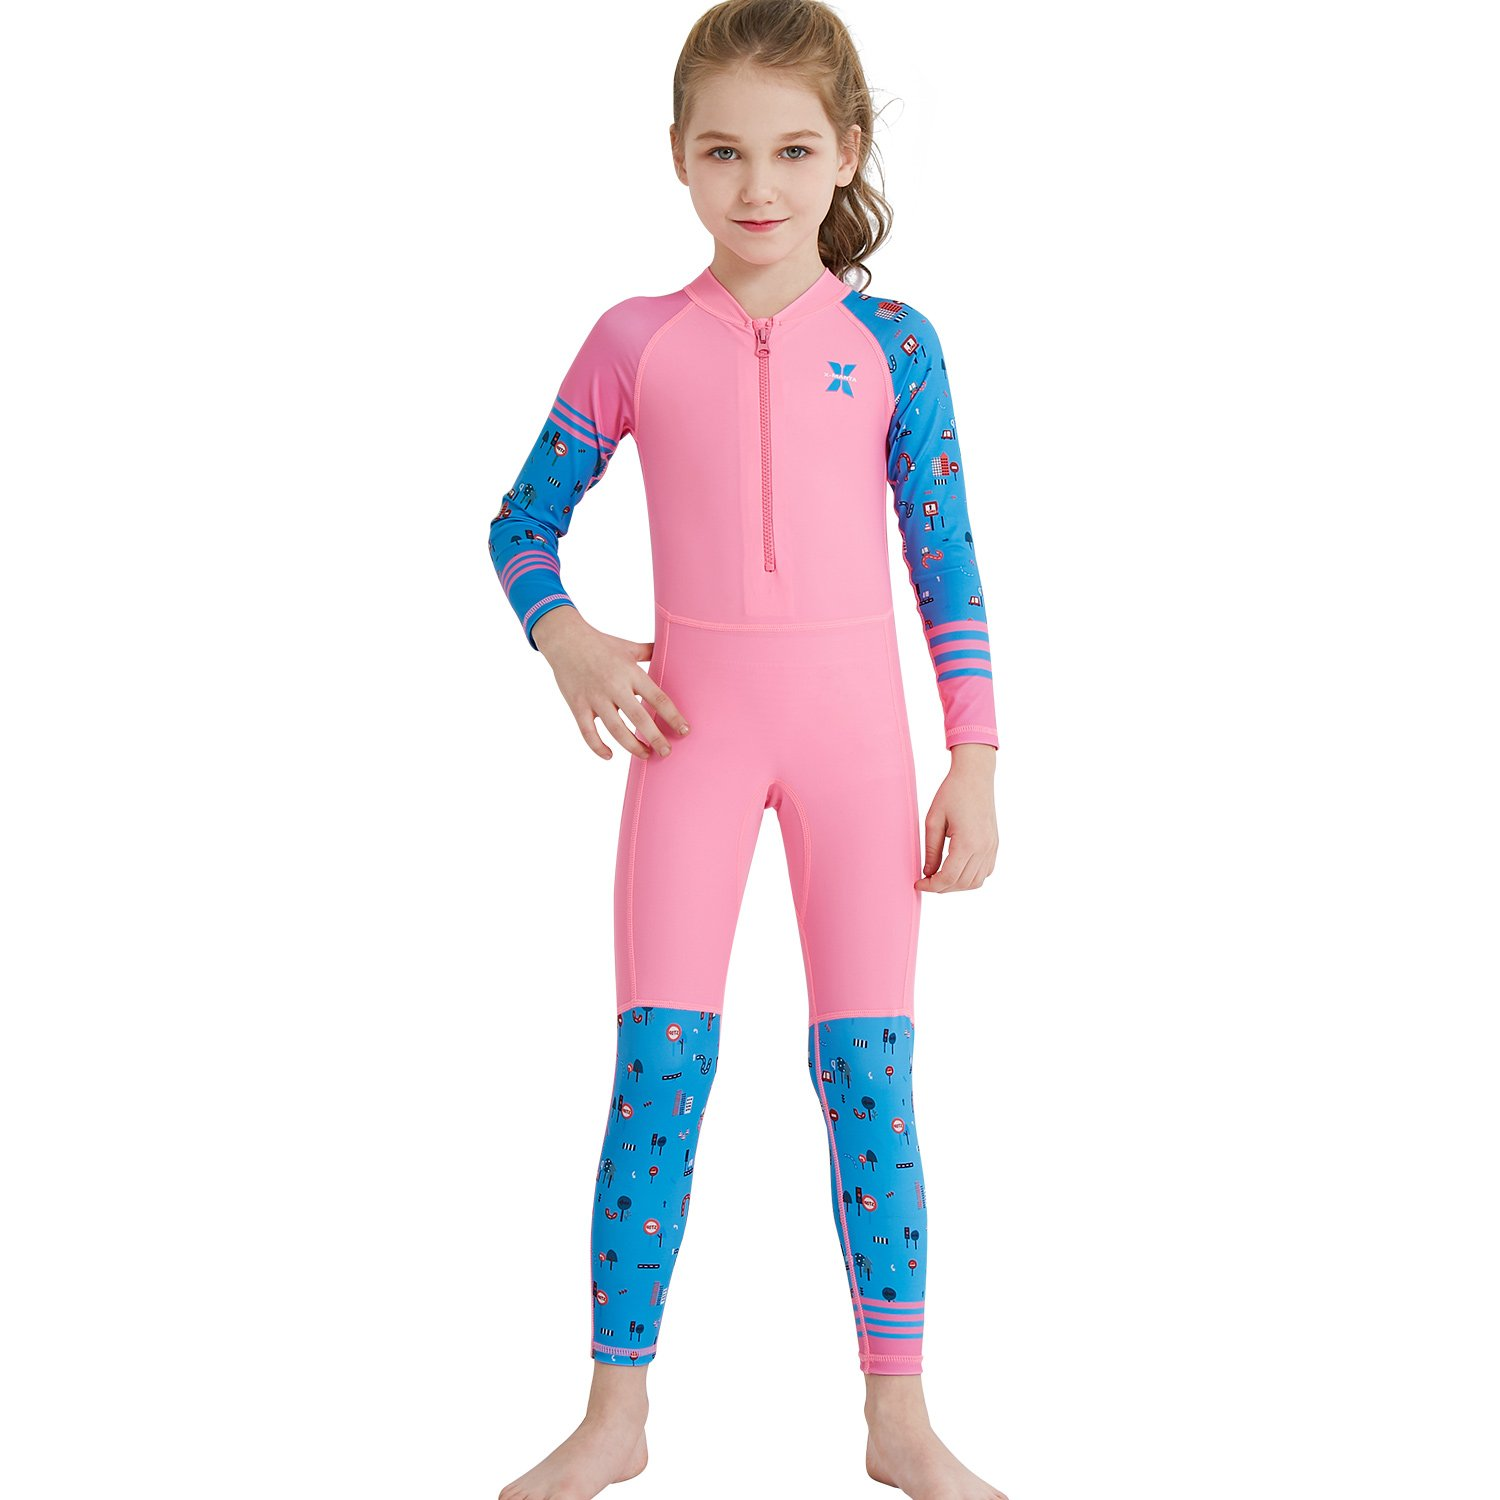 Full Swimsuit for Girls Rashguard Swimsuit Sun Protection UPF 50+ One Piece Swimsuits Pink XL